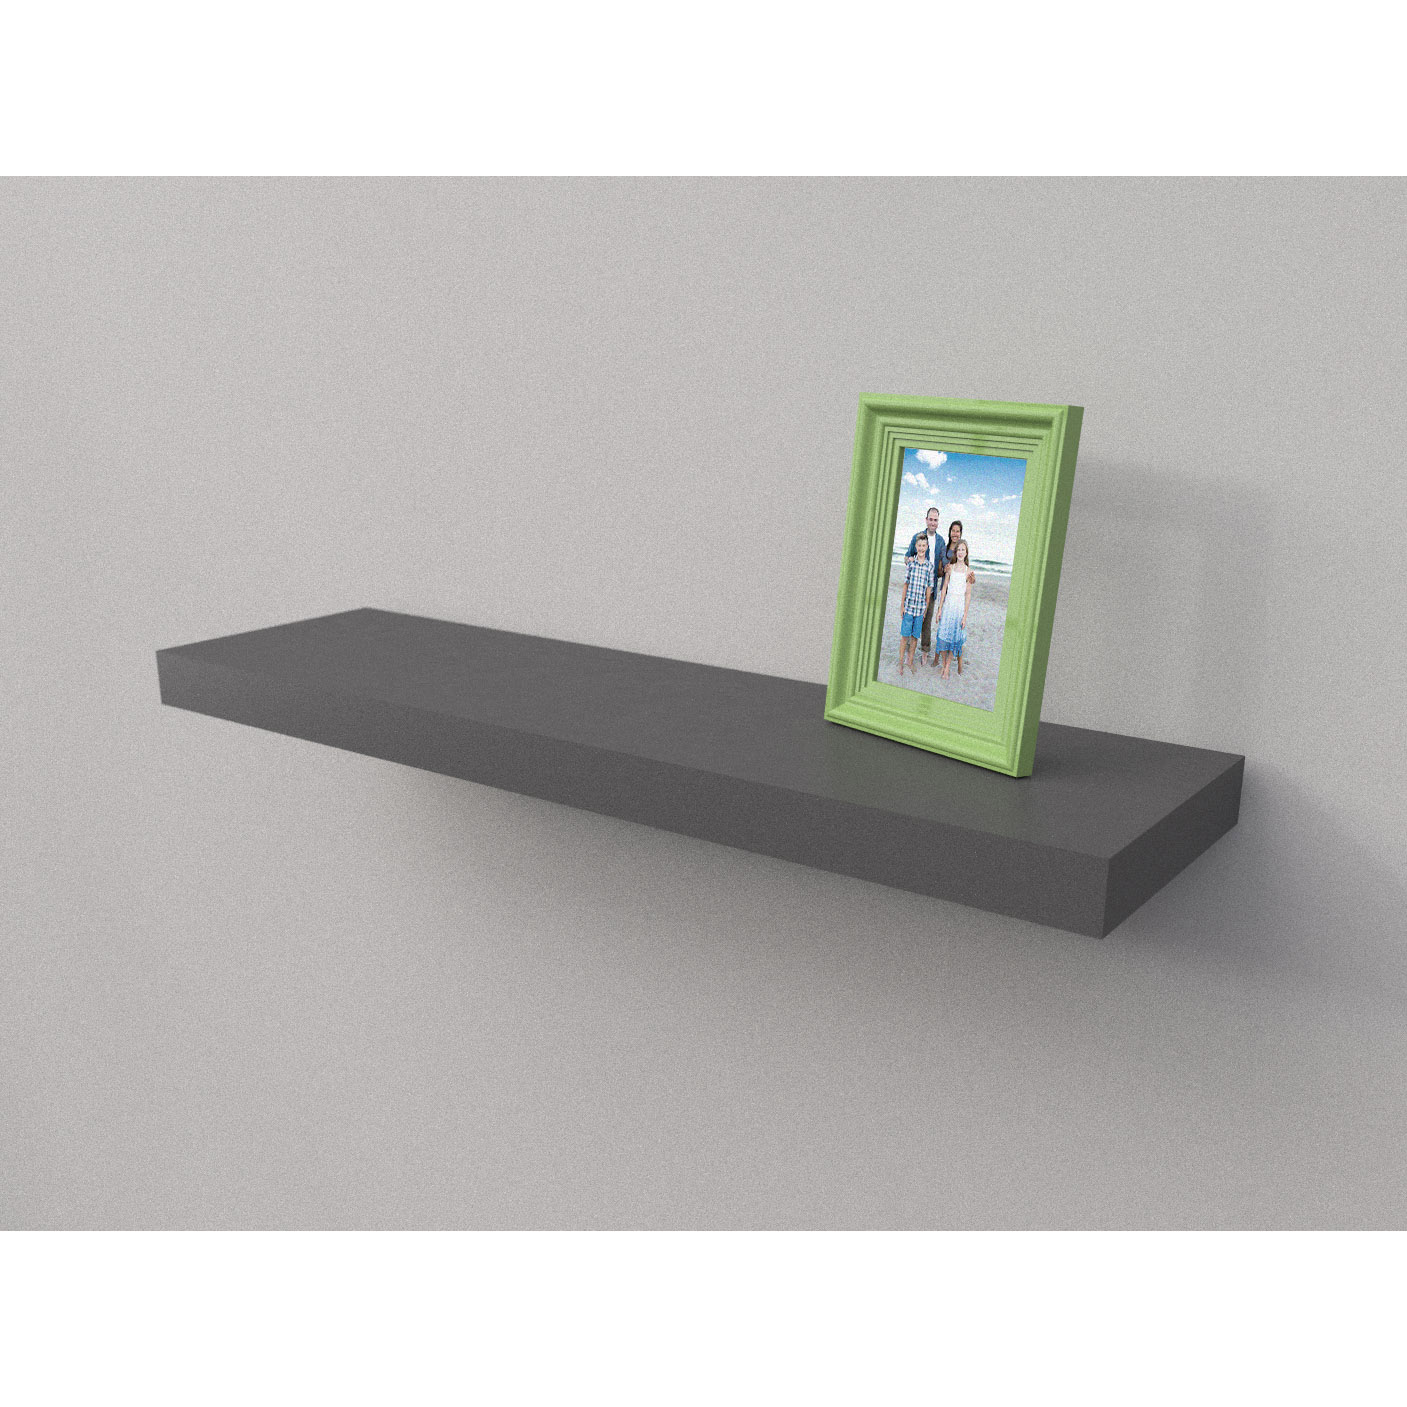 stone grey floating shelf part mastershelf with drawer fireplace ledge home loft concept big shoe rack designs navy shelves oak mantel beam shower screen installation couch table